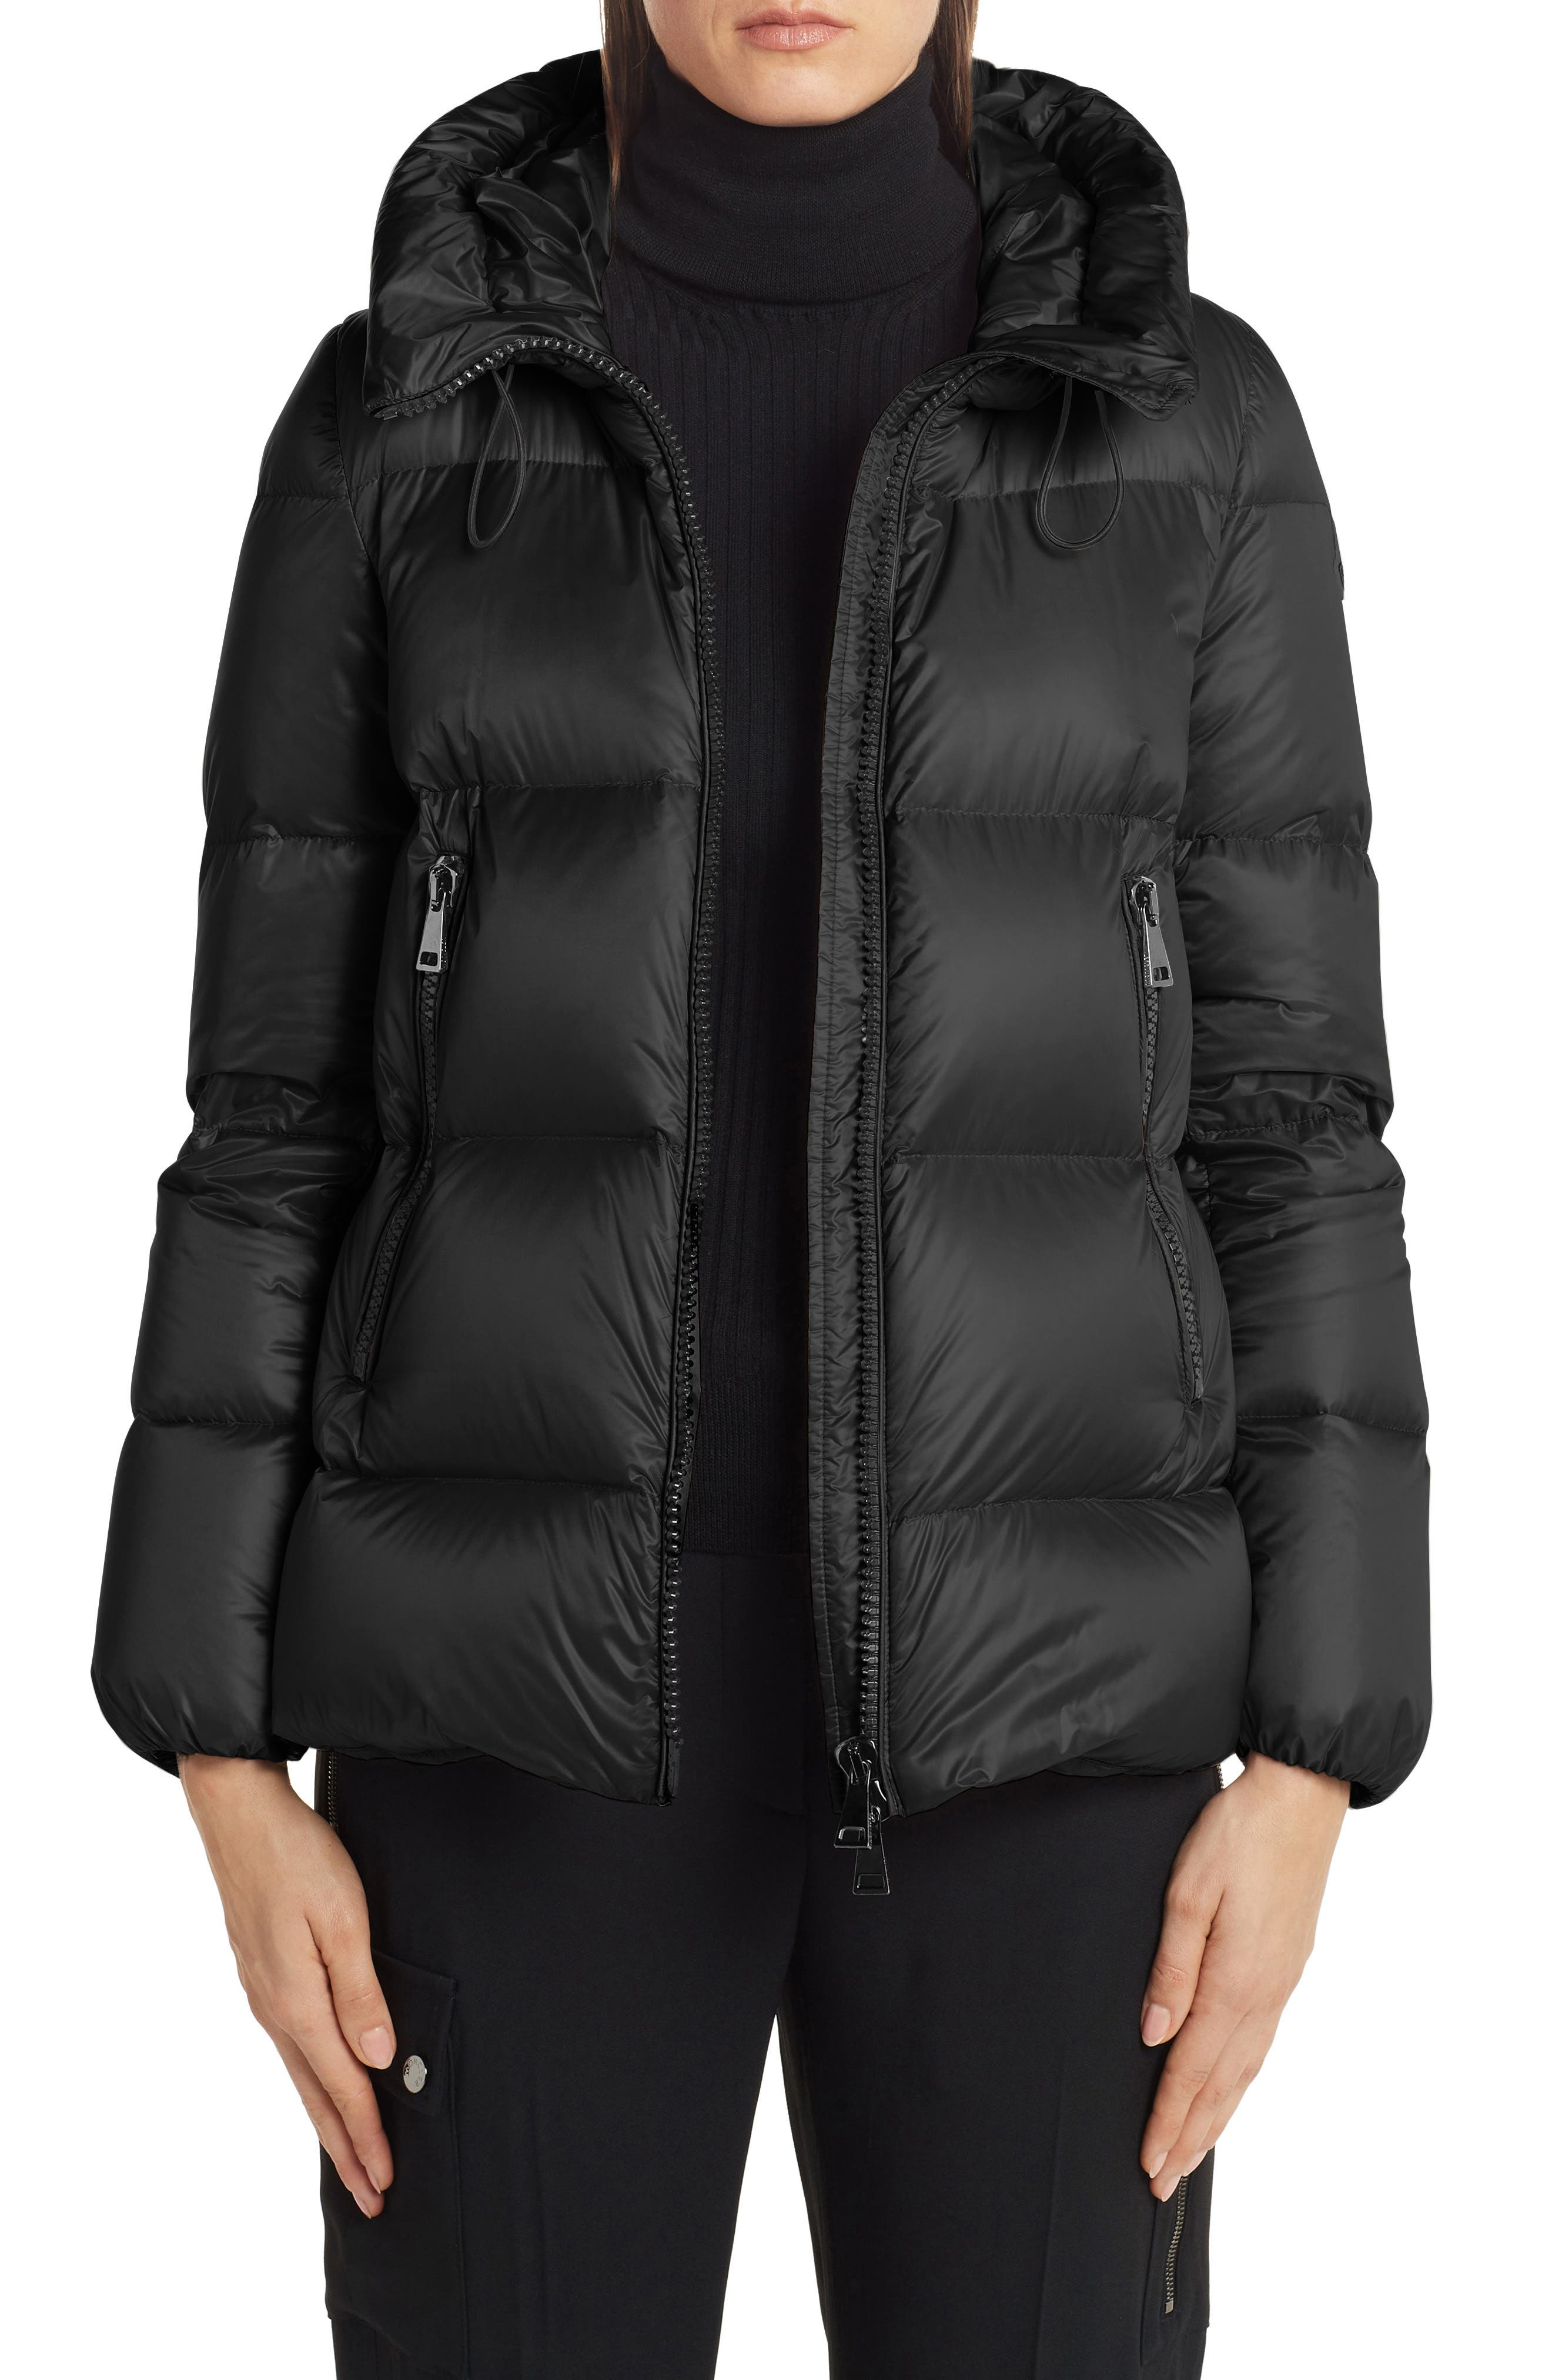 Moncler MAYA for Man, Outerwear | Official Online Store